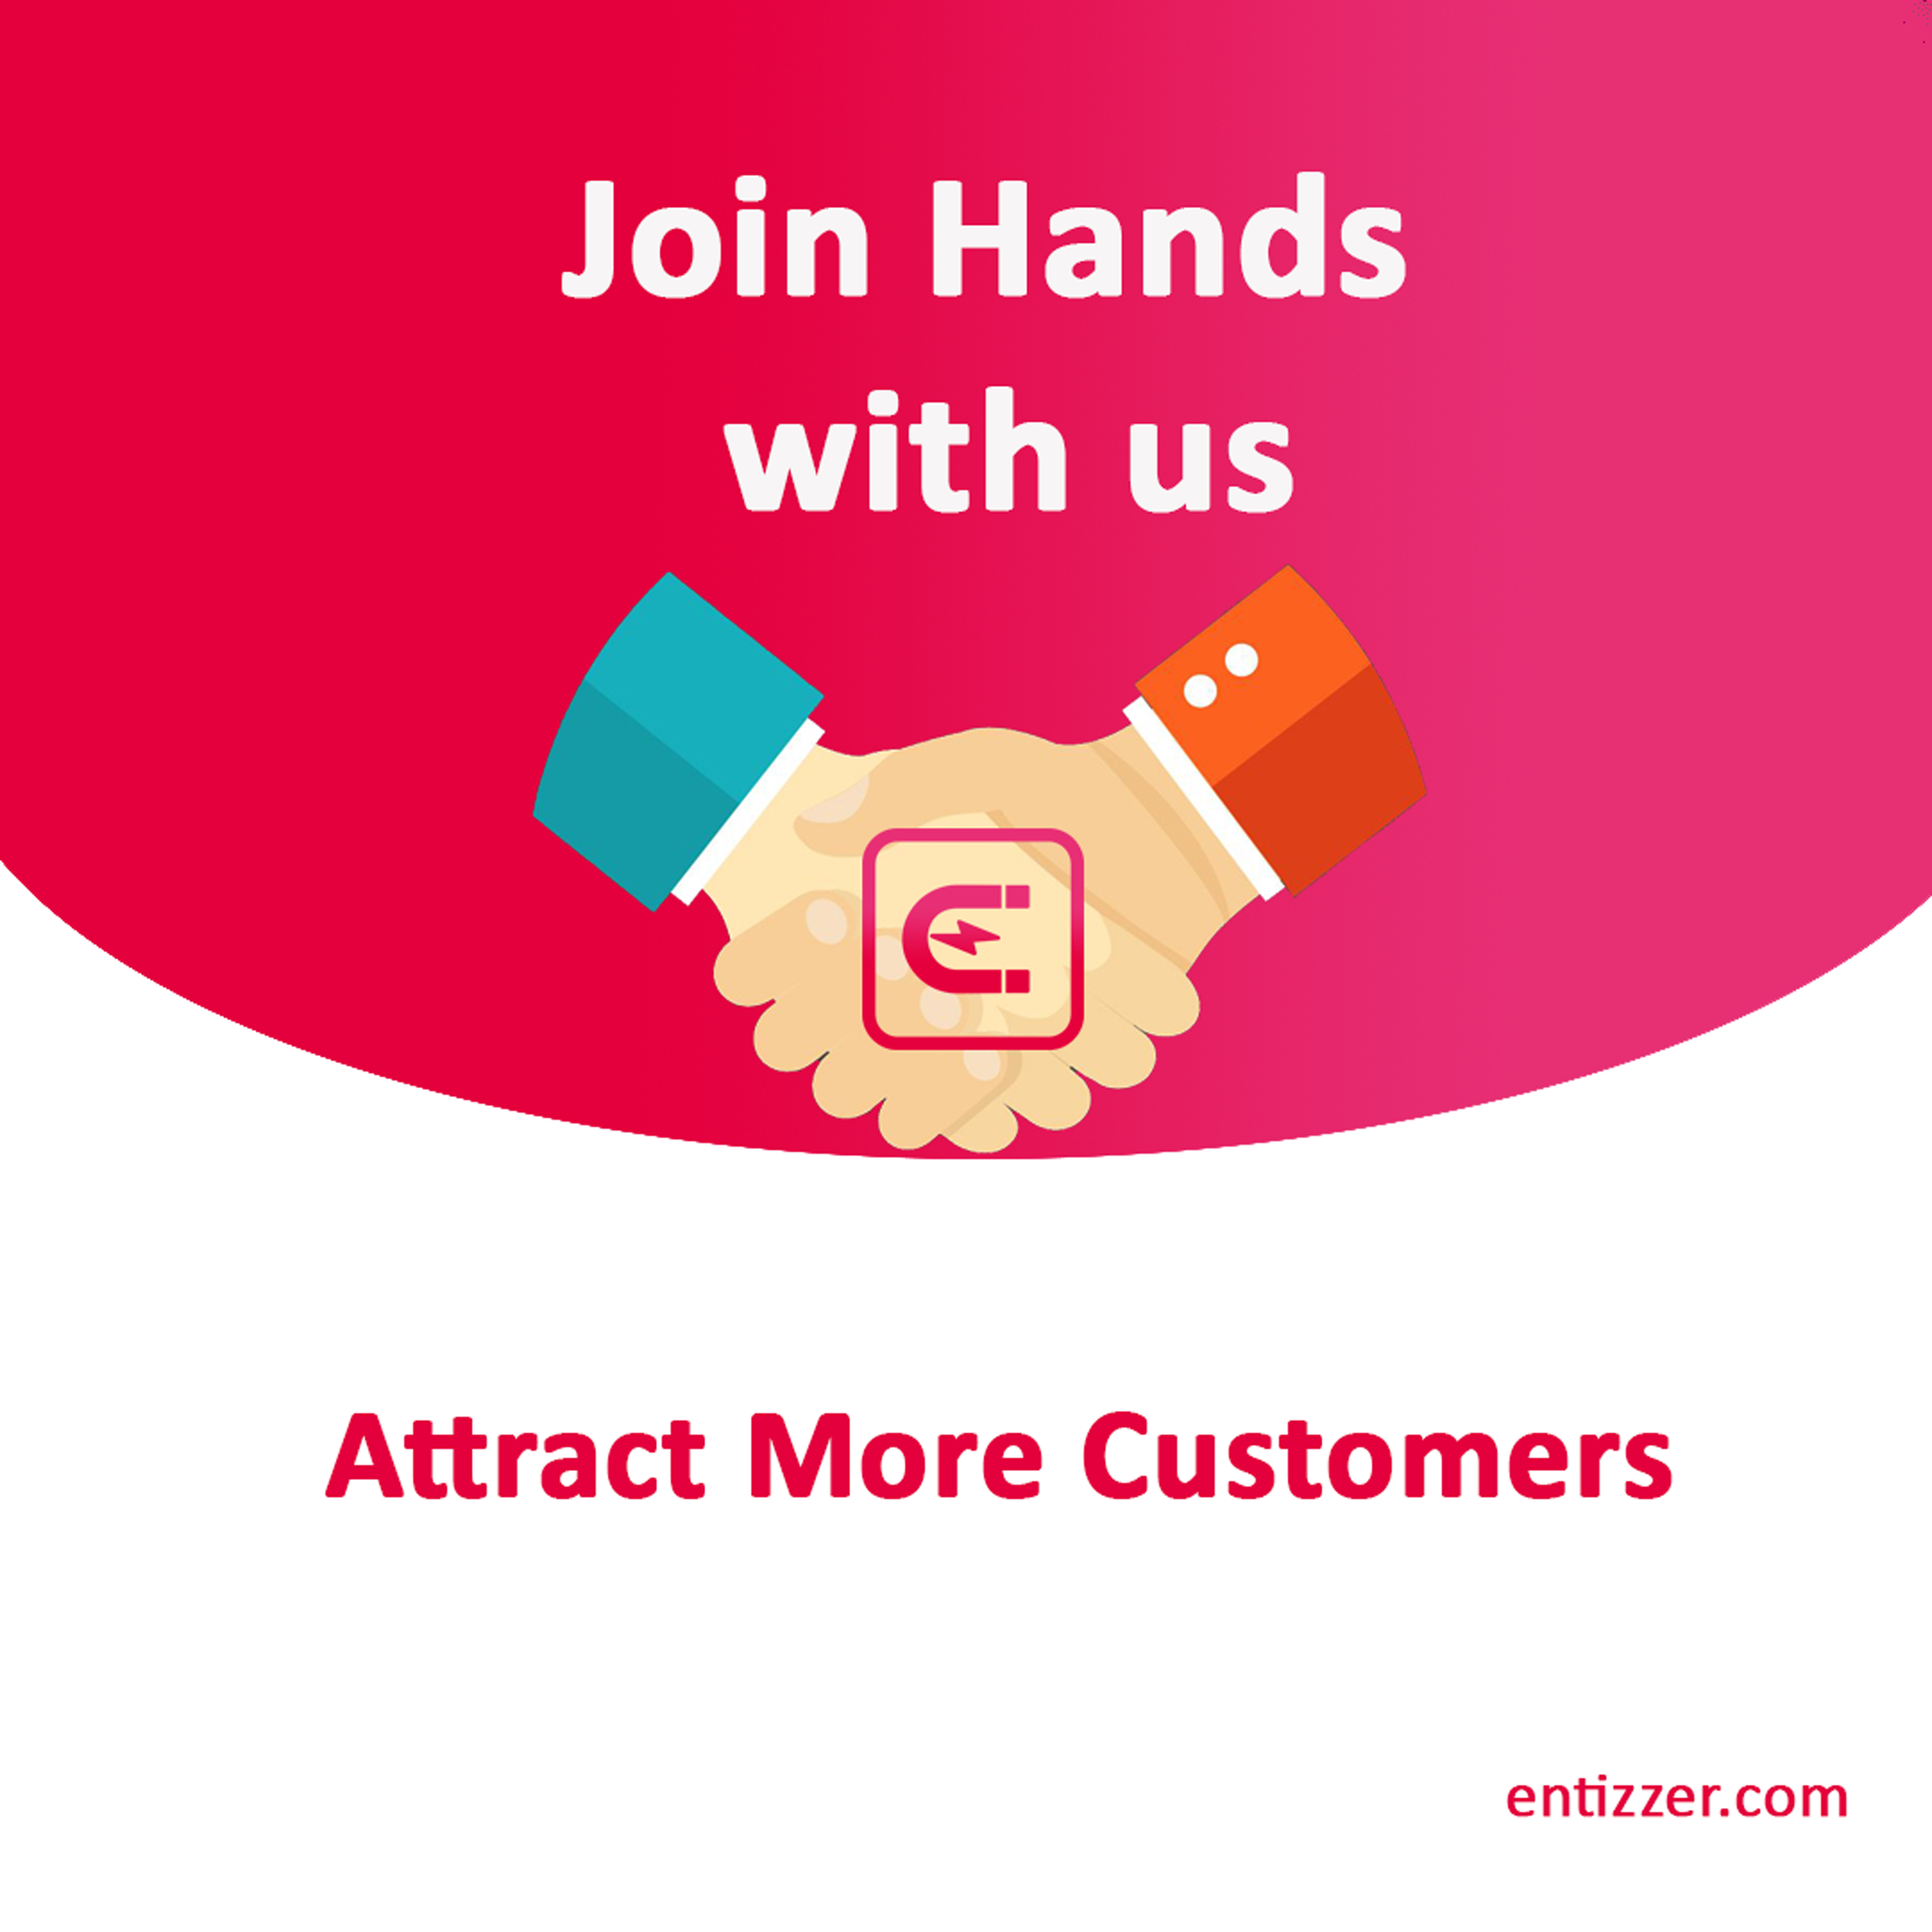 Join Hands With Us Educational Technology Steam Education Brand